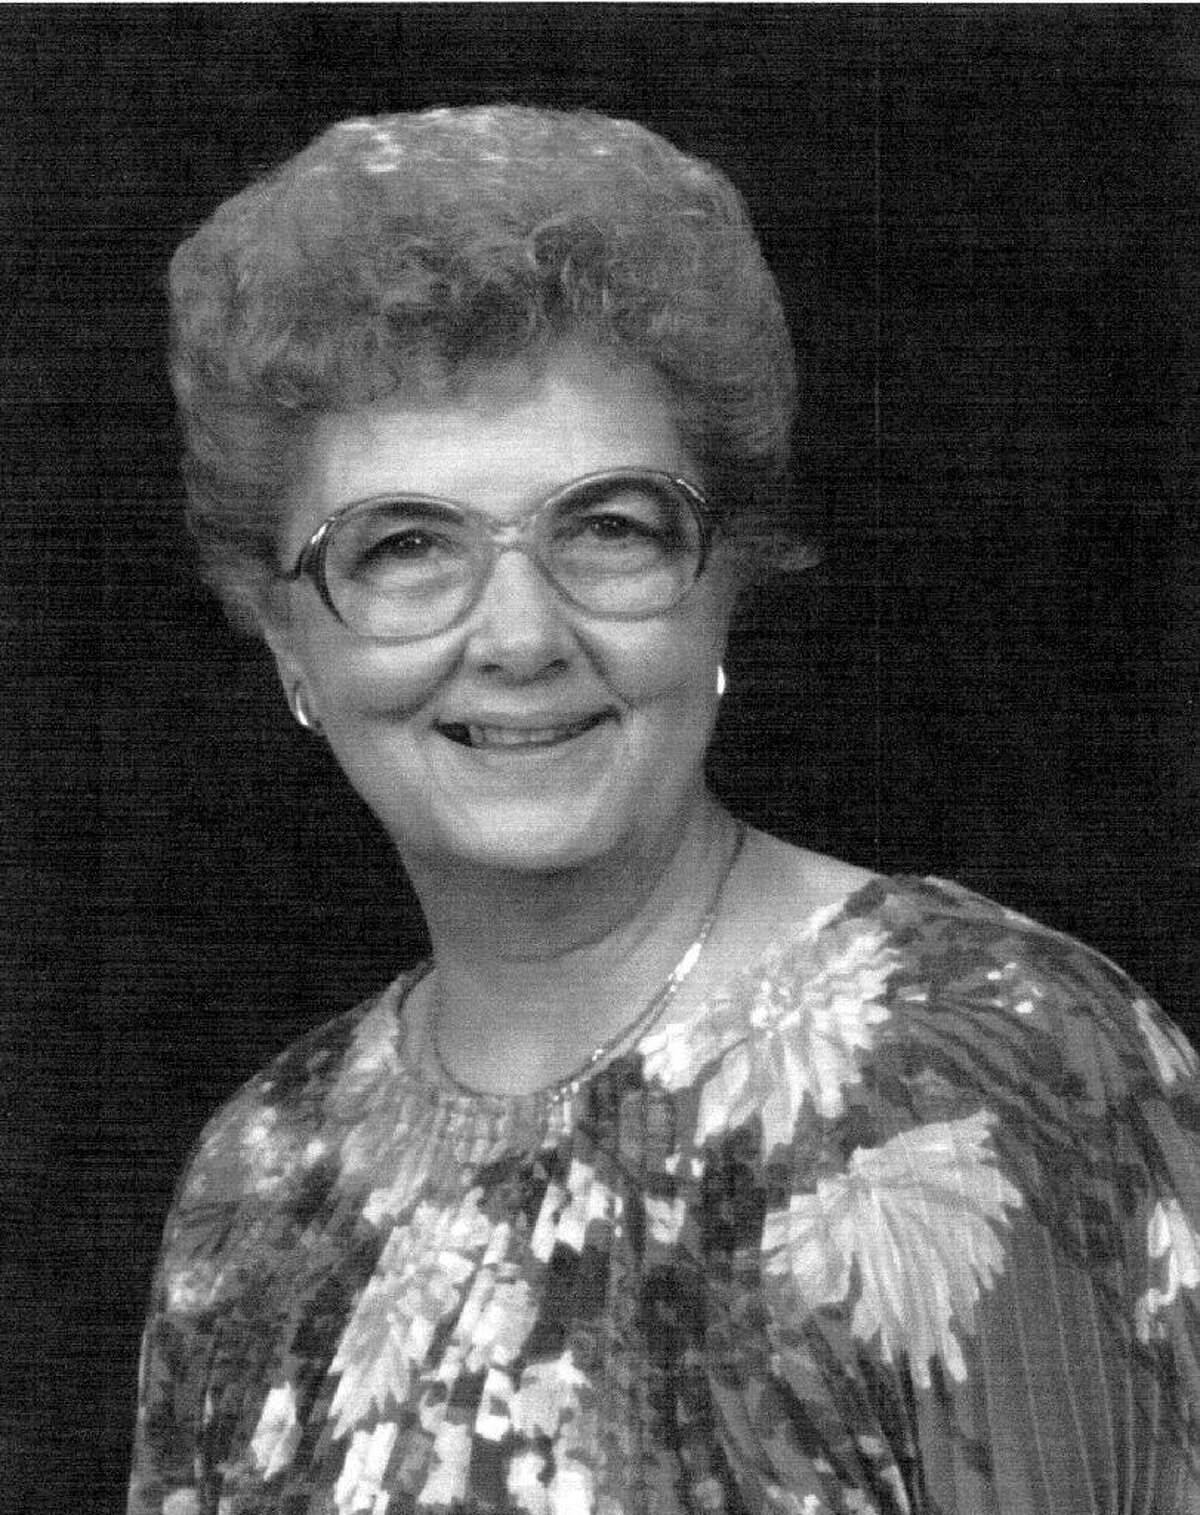 """Elizabeth S. """"Dolly"""" Hudson also worked at Northrop Worldwide Aircraft Services Inc"""